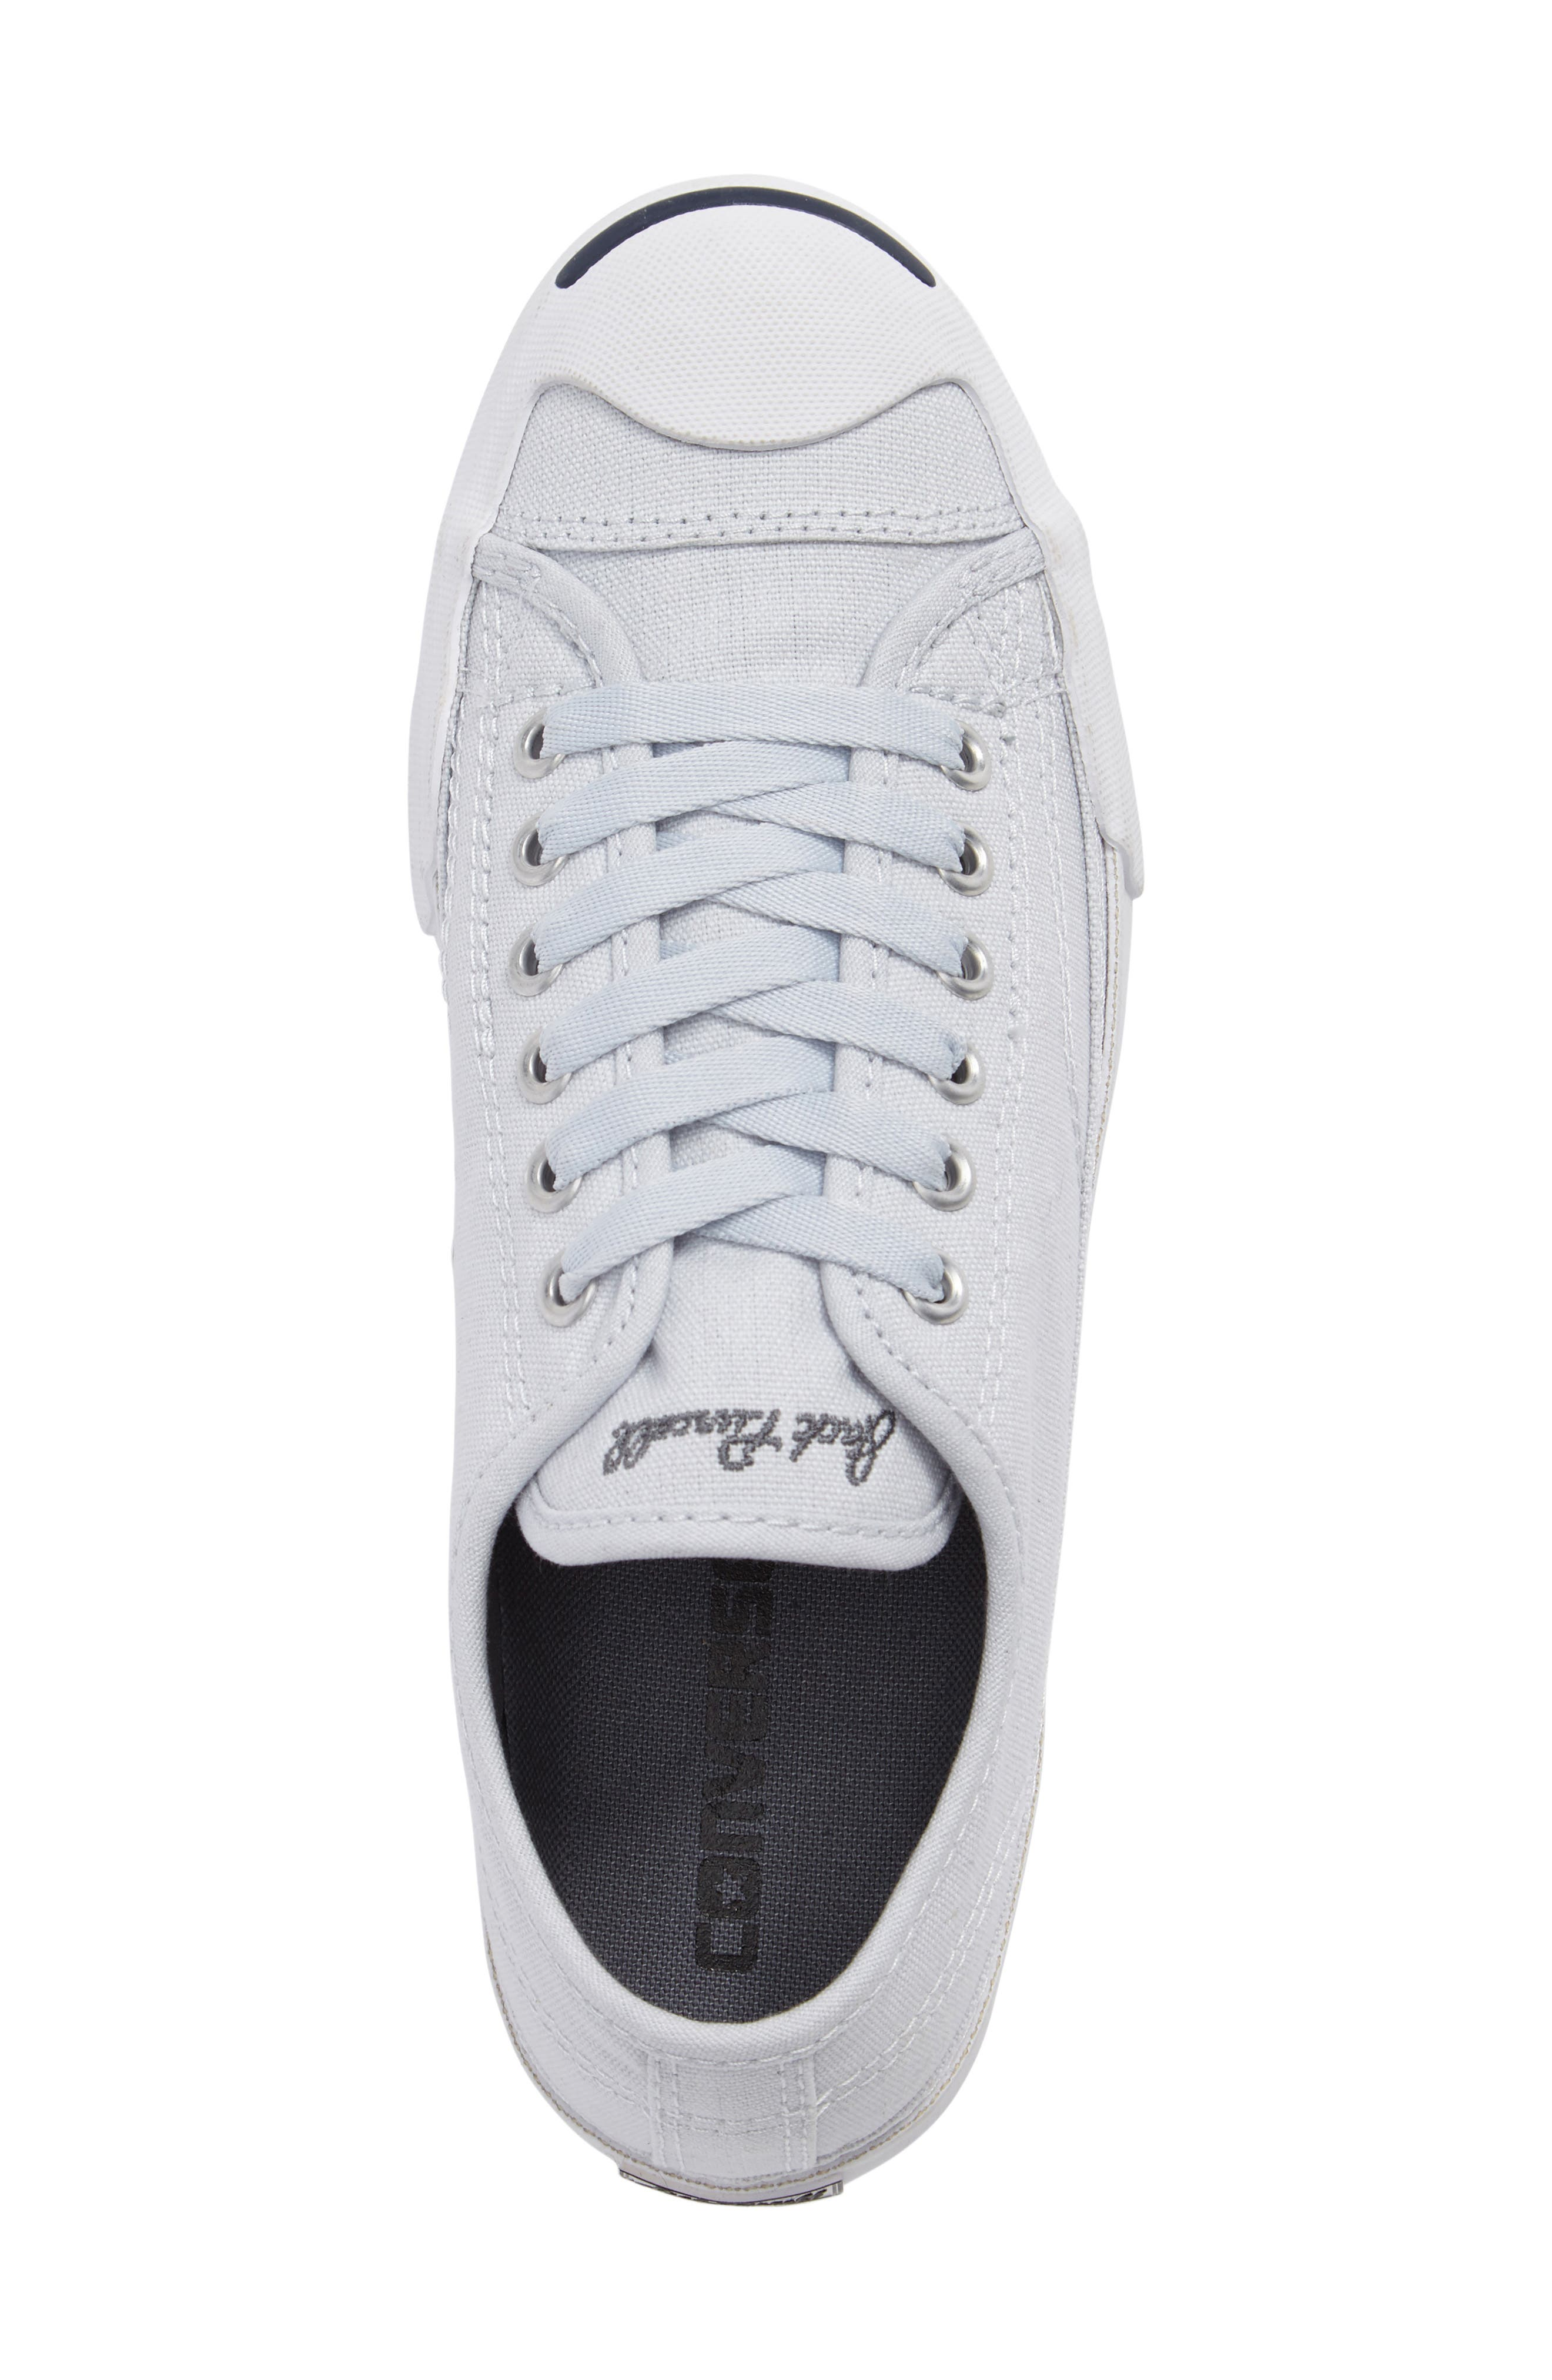 Jack Purcell Signature Ox Low Top Sneaker,                             Alternate thumbnail 5, color,